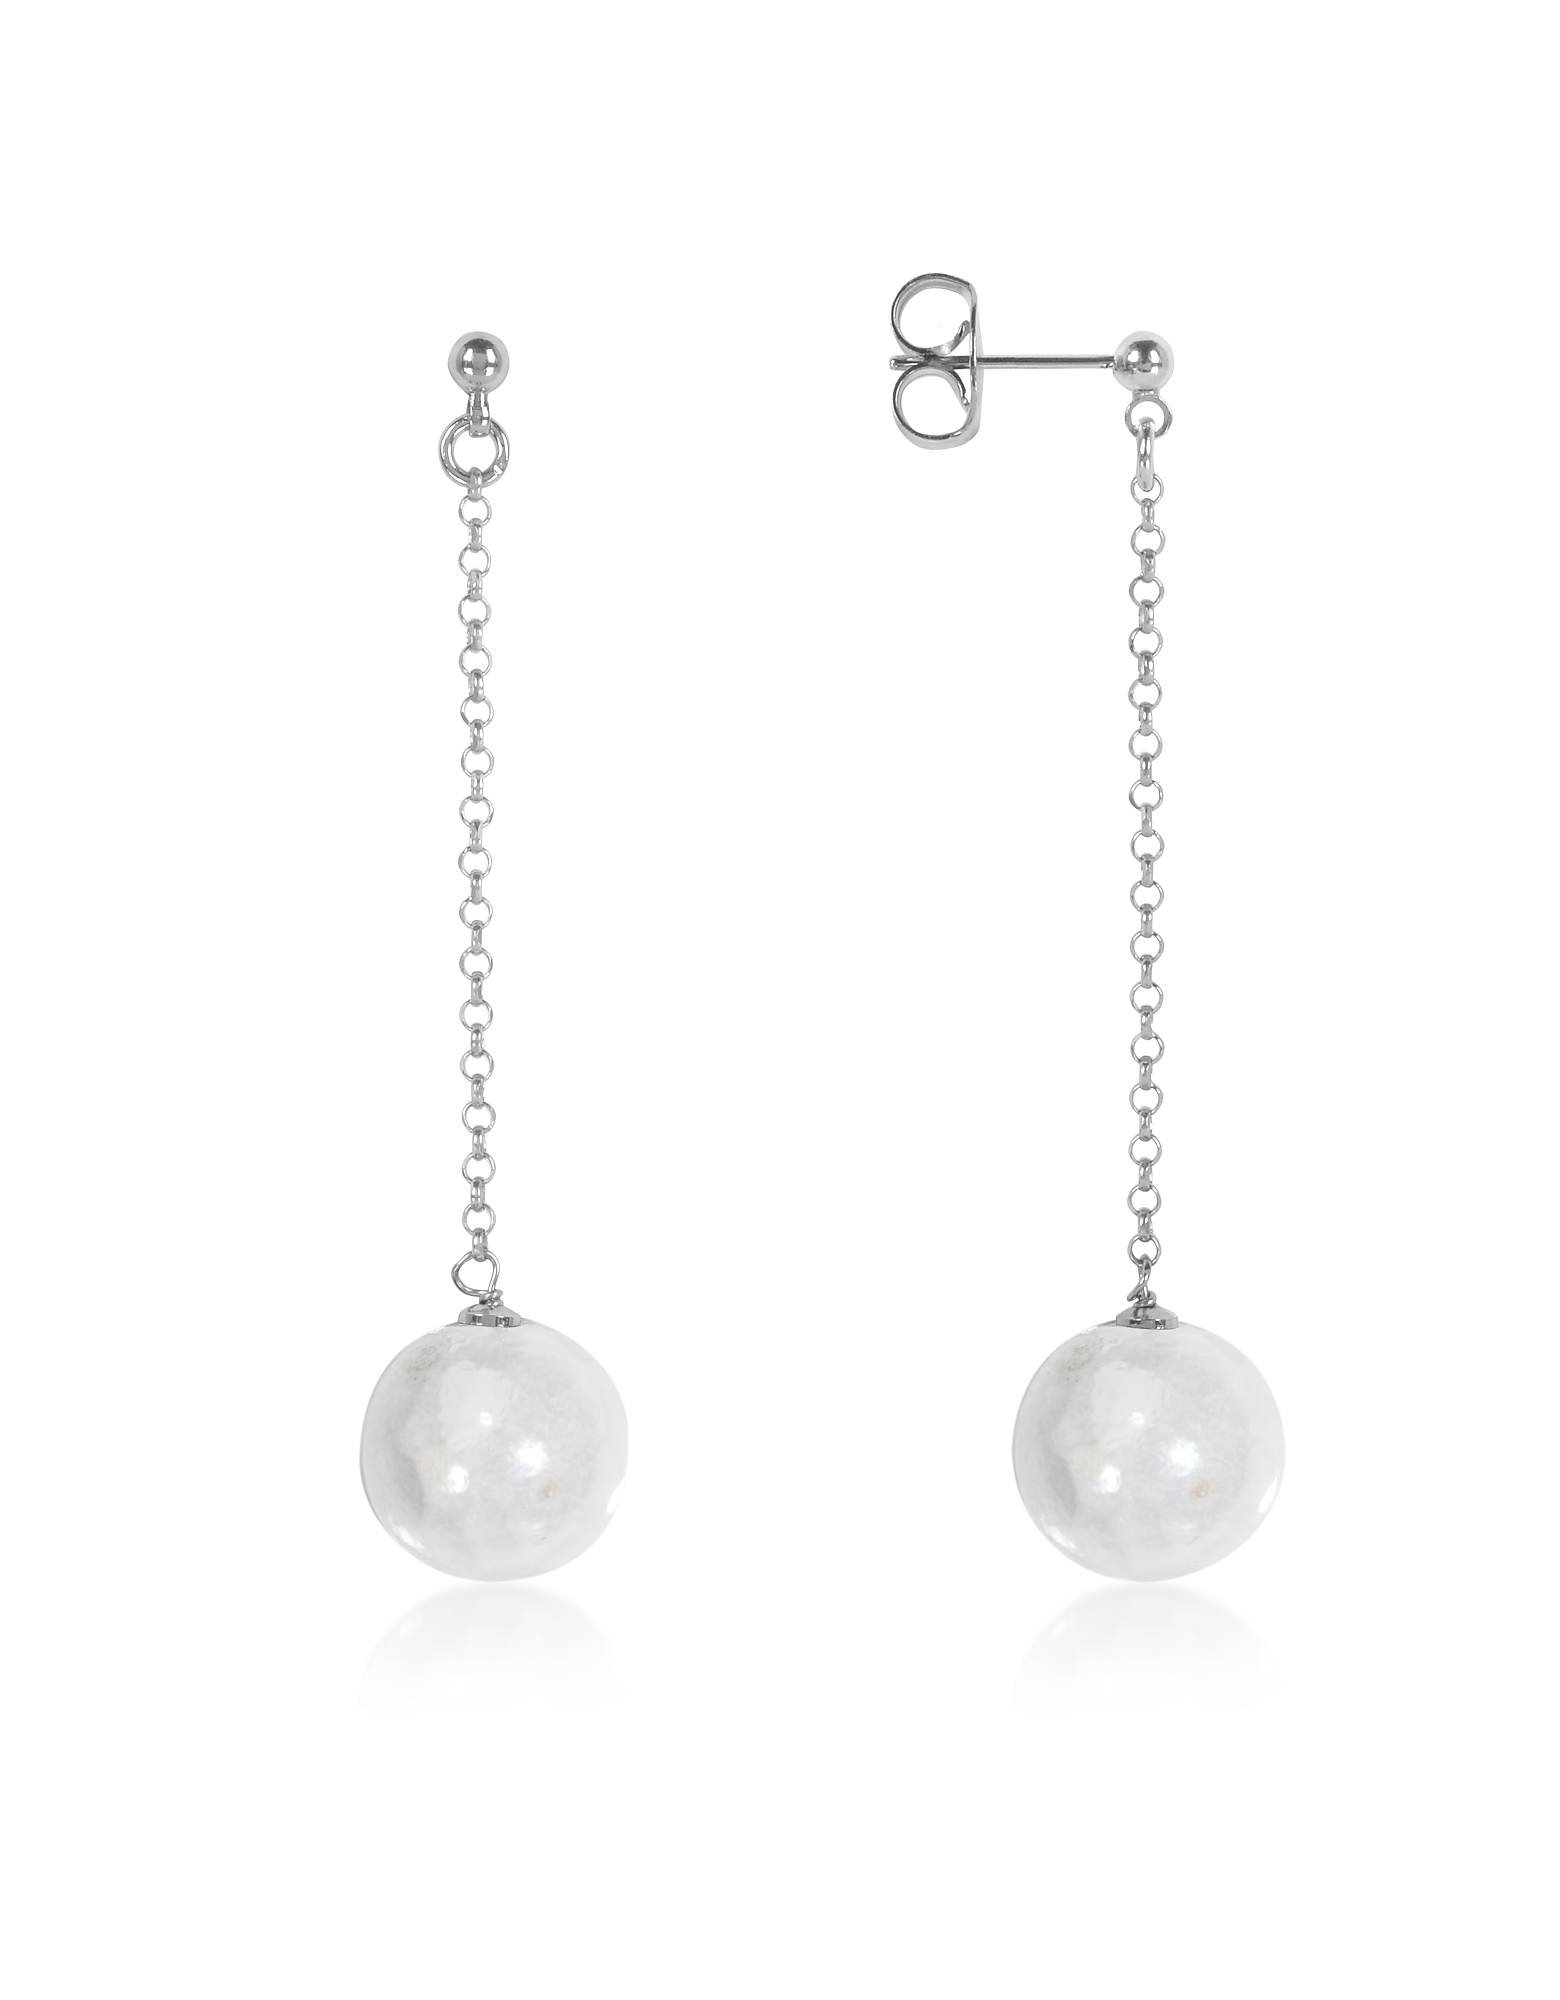 Antica Murrina Earrings, Perleadi White Murano Glass Bead Earrings